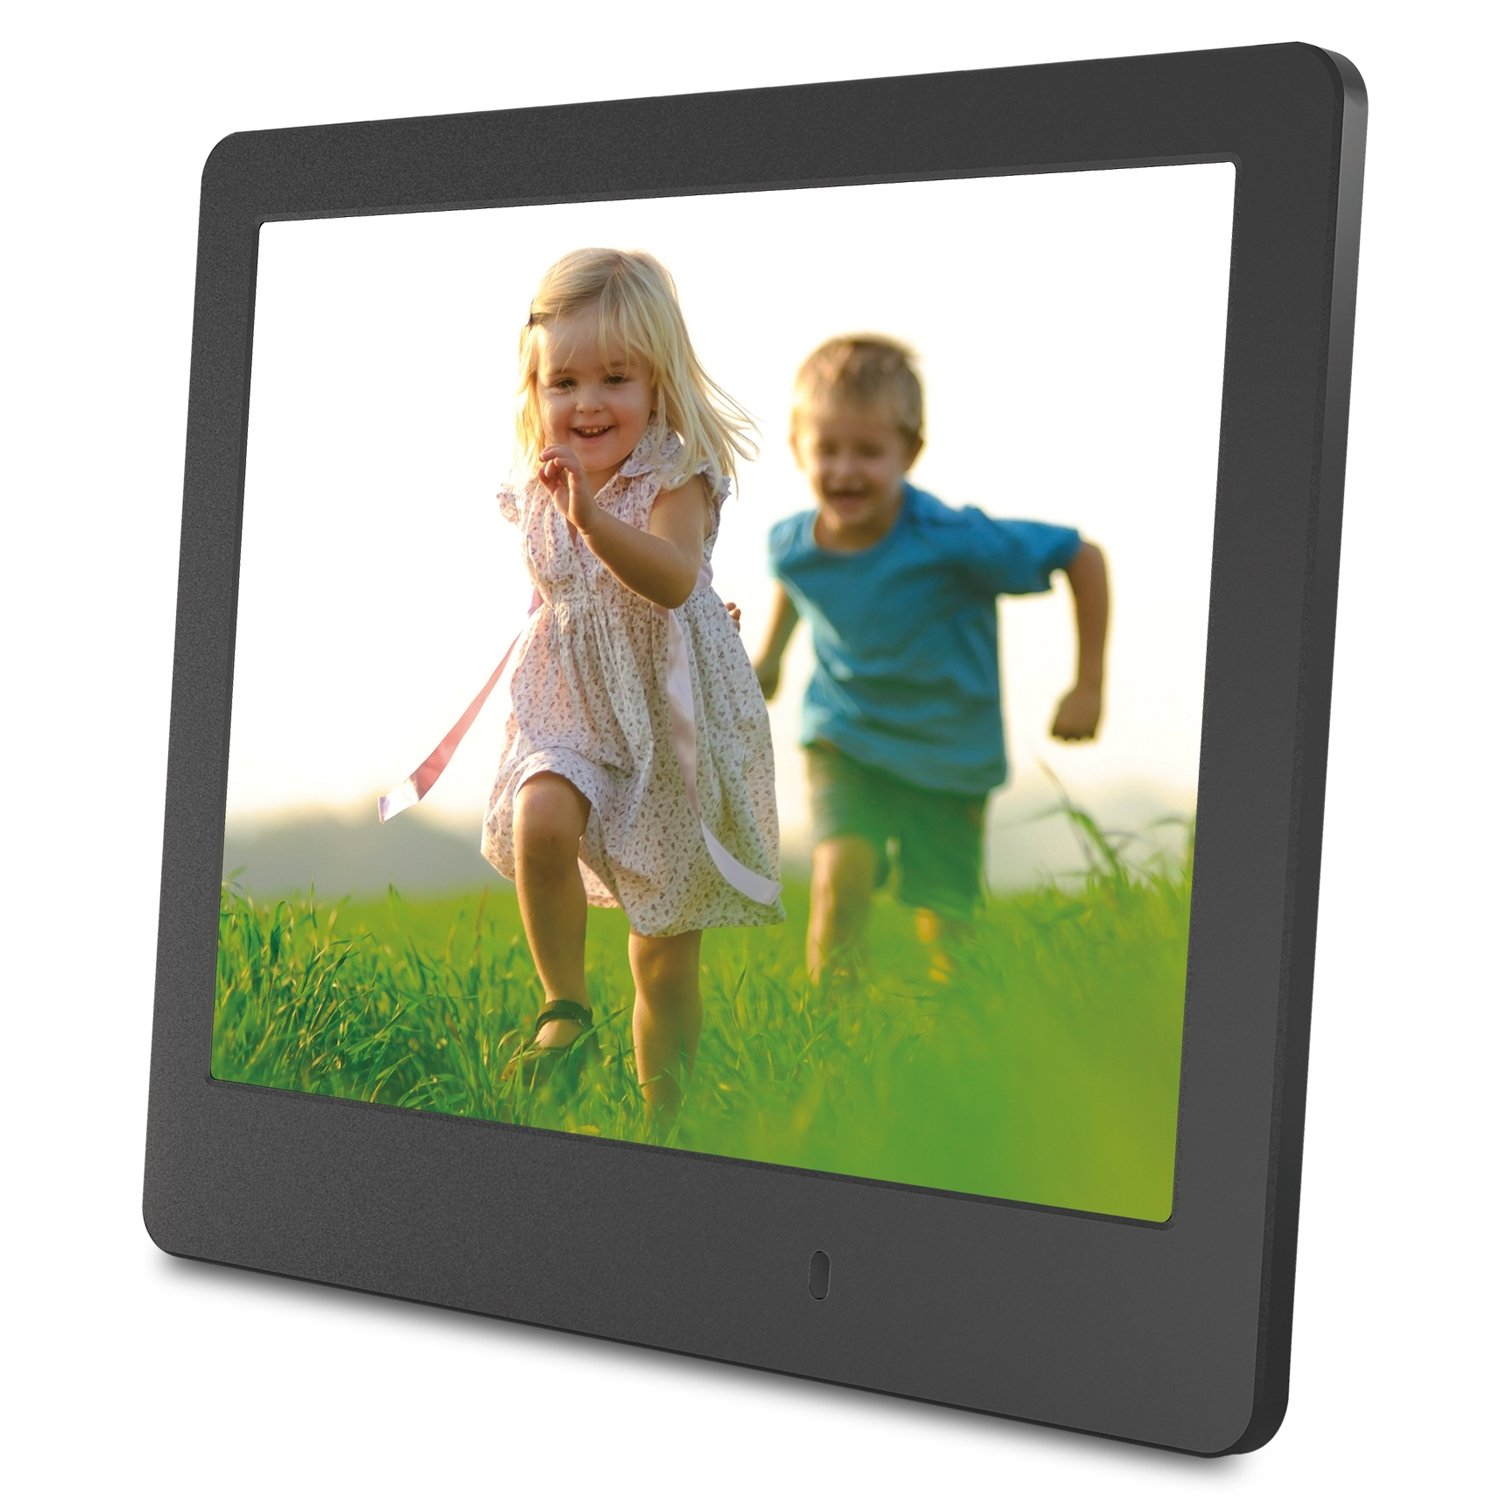 amazoncom viewsonic vfd820 50 8 inch digital photo frame black digital picture frames camera photo - Electronic Picture Frame